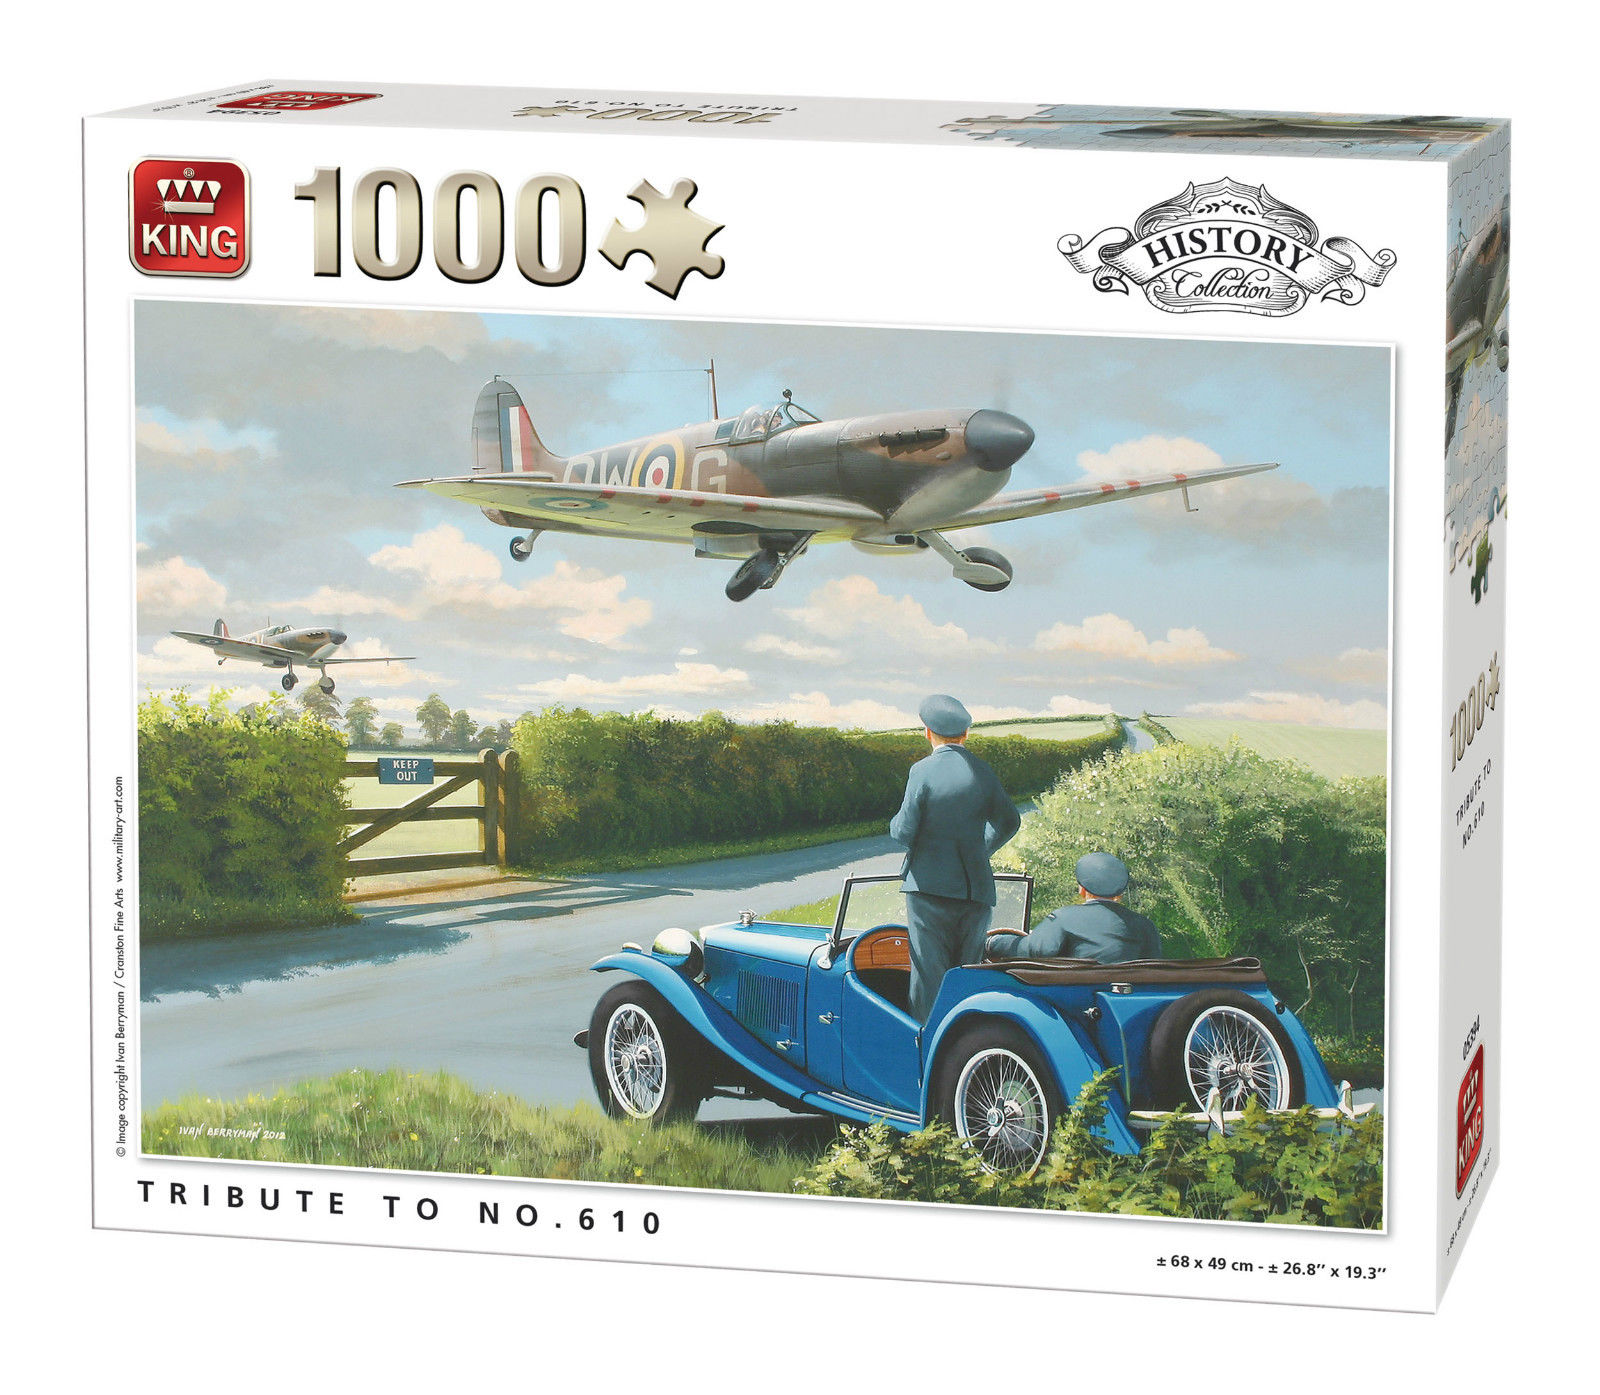 king-international-tribute-to-no-610-1000-teile-puzzle-king-puzzle-05394